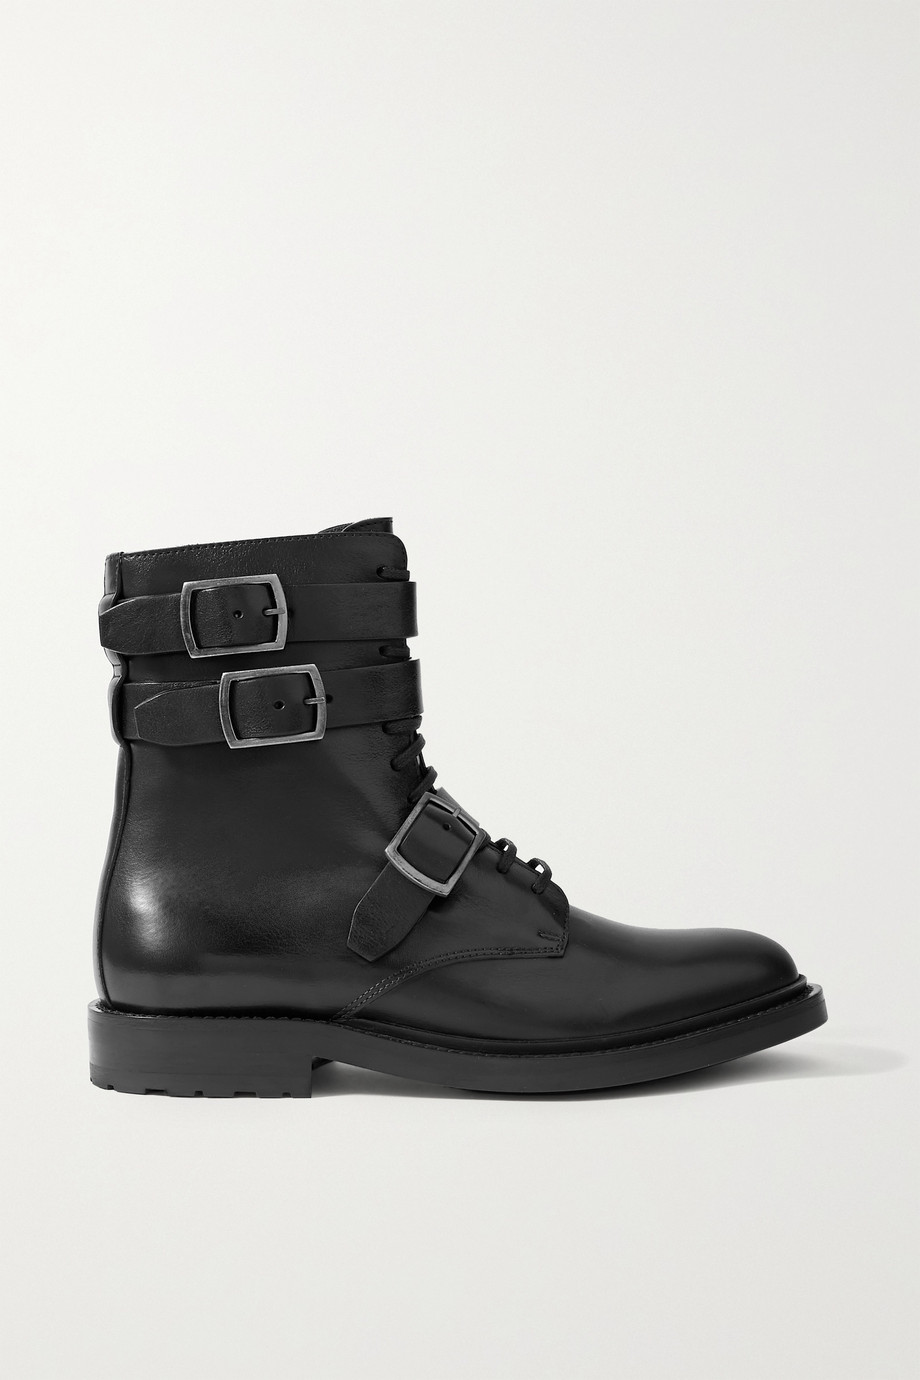 SAINT LAURENT Army buckled leather ankle boots